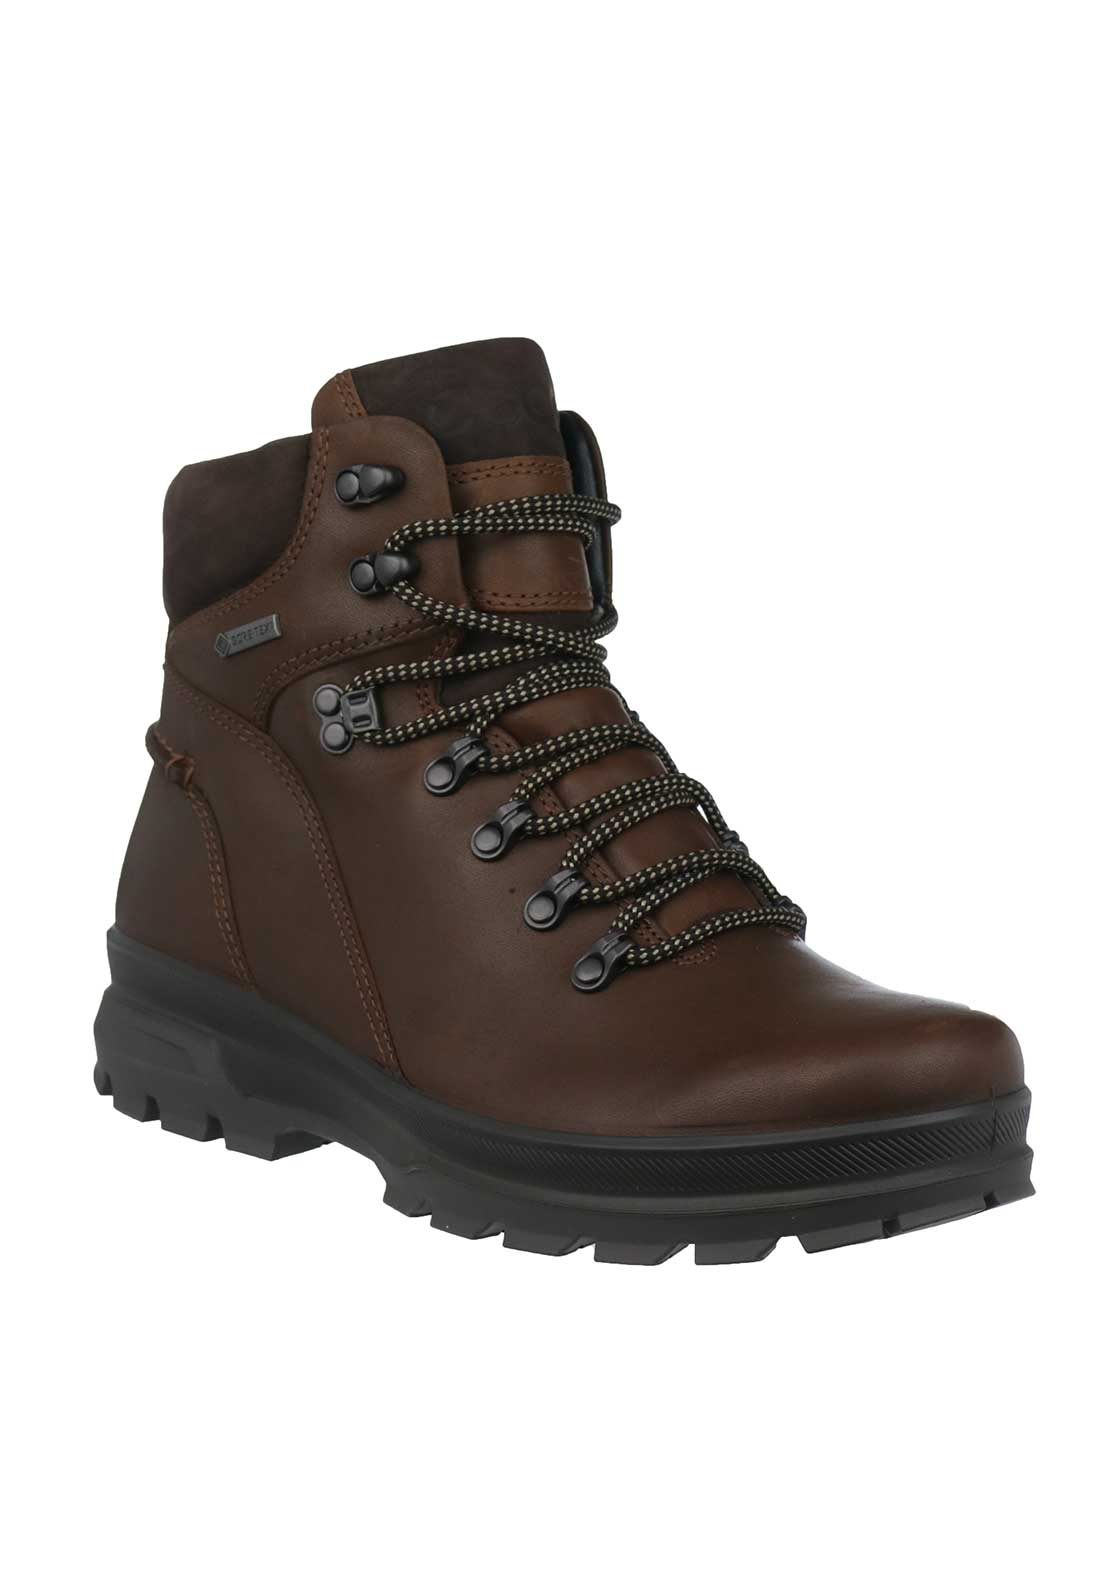 Ecco Mens Leather Rugged Track Boots, Brown